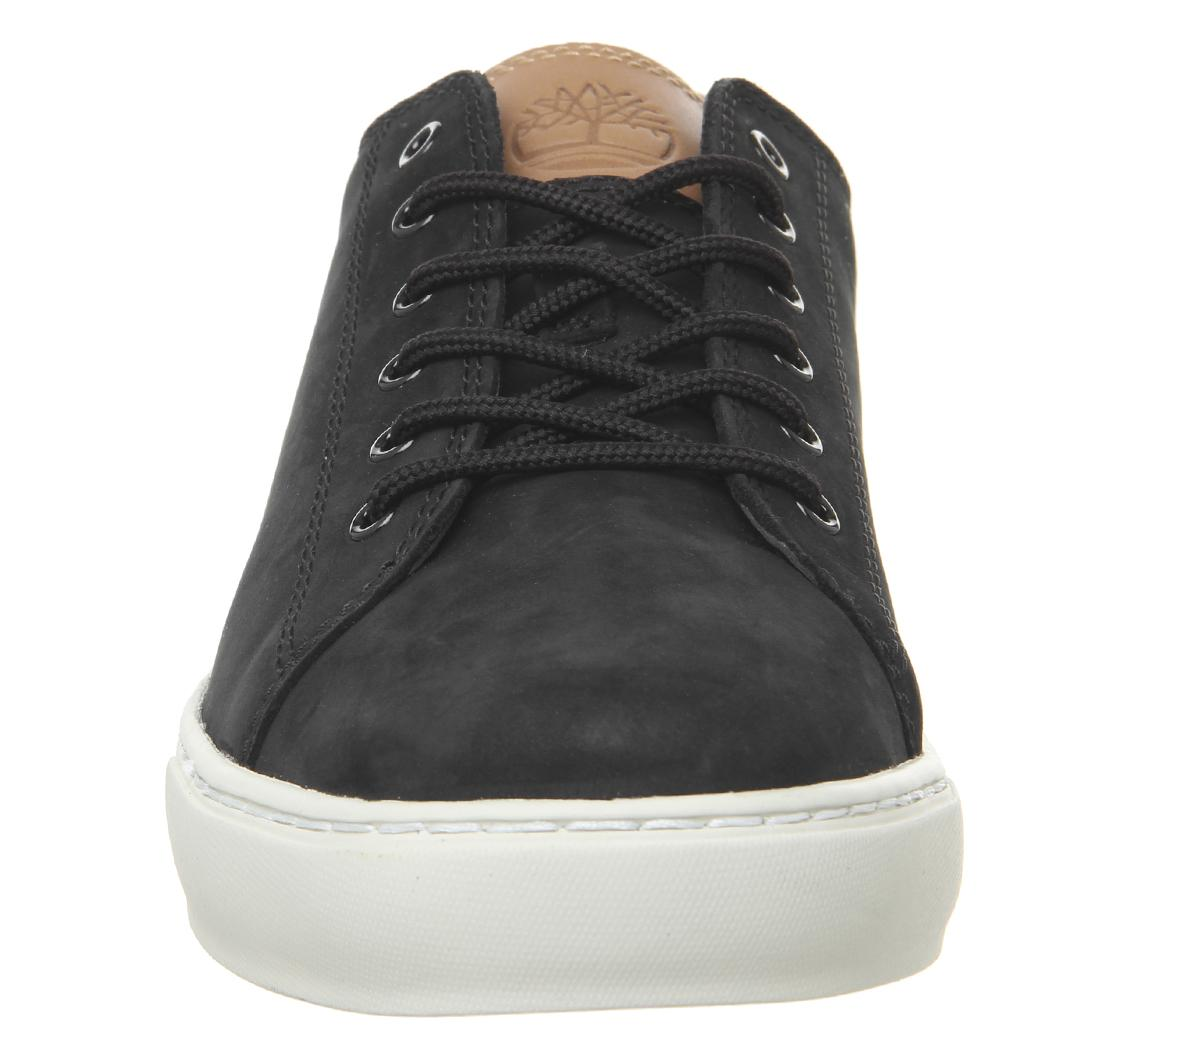 Timberland Adv 2.0 Cupsole Modern Ox Trainers Black Casual